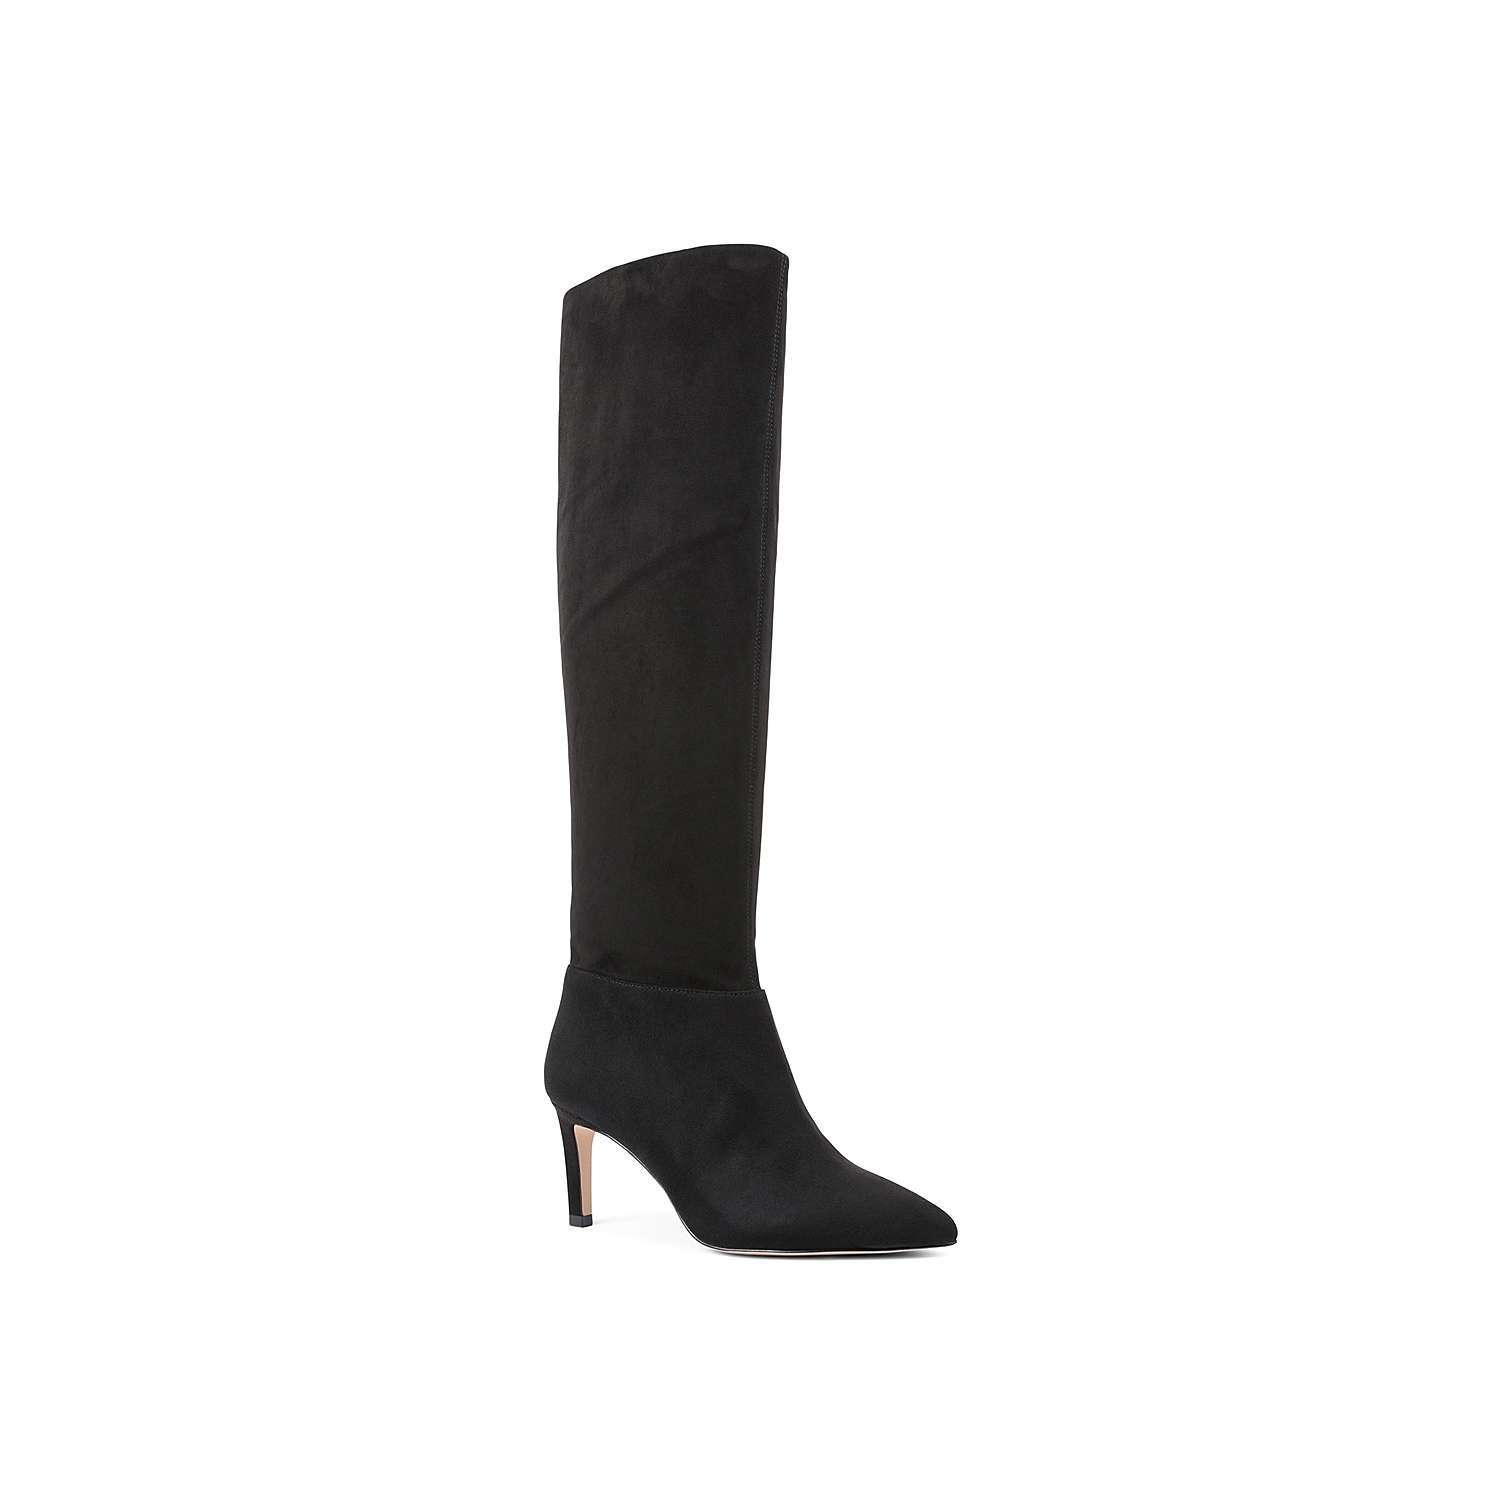 Add versatility to your cool weather wardrobe with the Marlo boot from BCBGeneration. This knee high features a stretchy faux suede upper that can be pulled up or scrunched down for a slouchy look. Click here for Boot Measuring Guide.